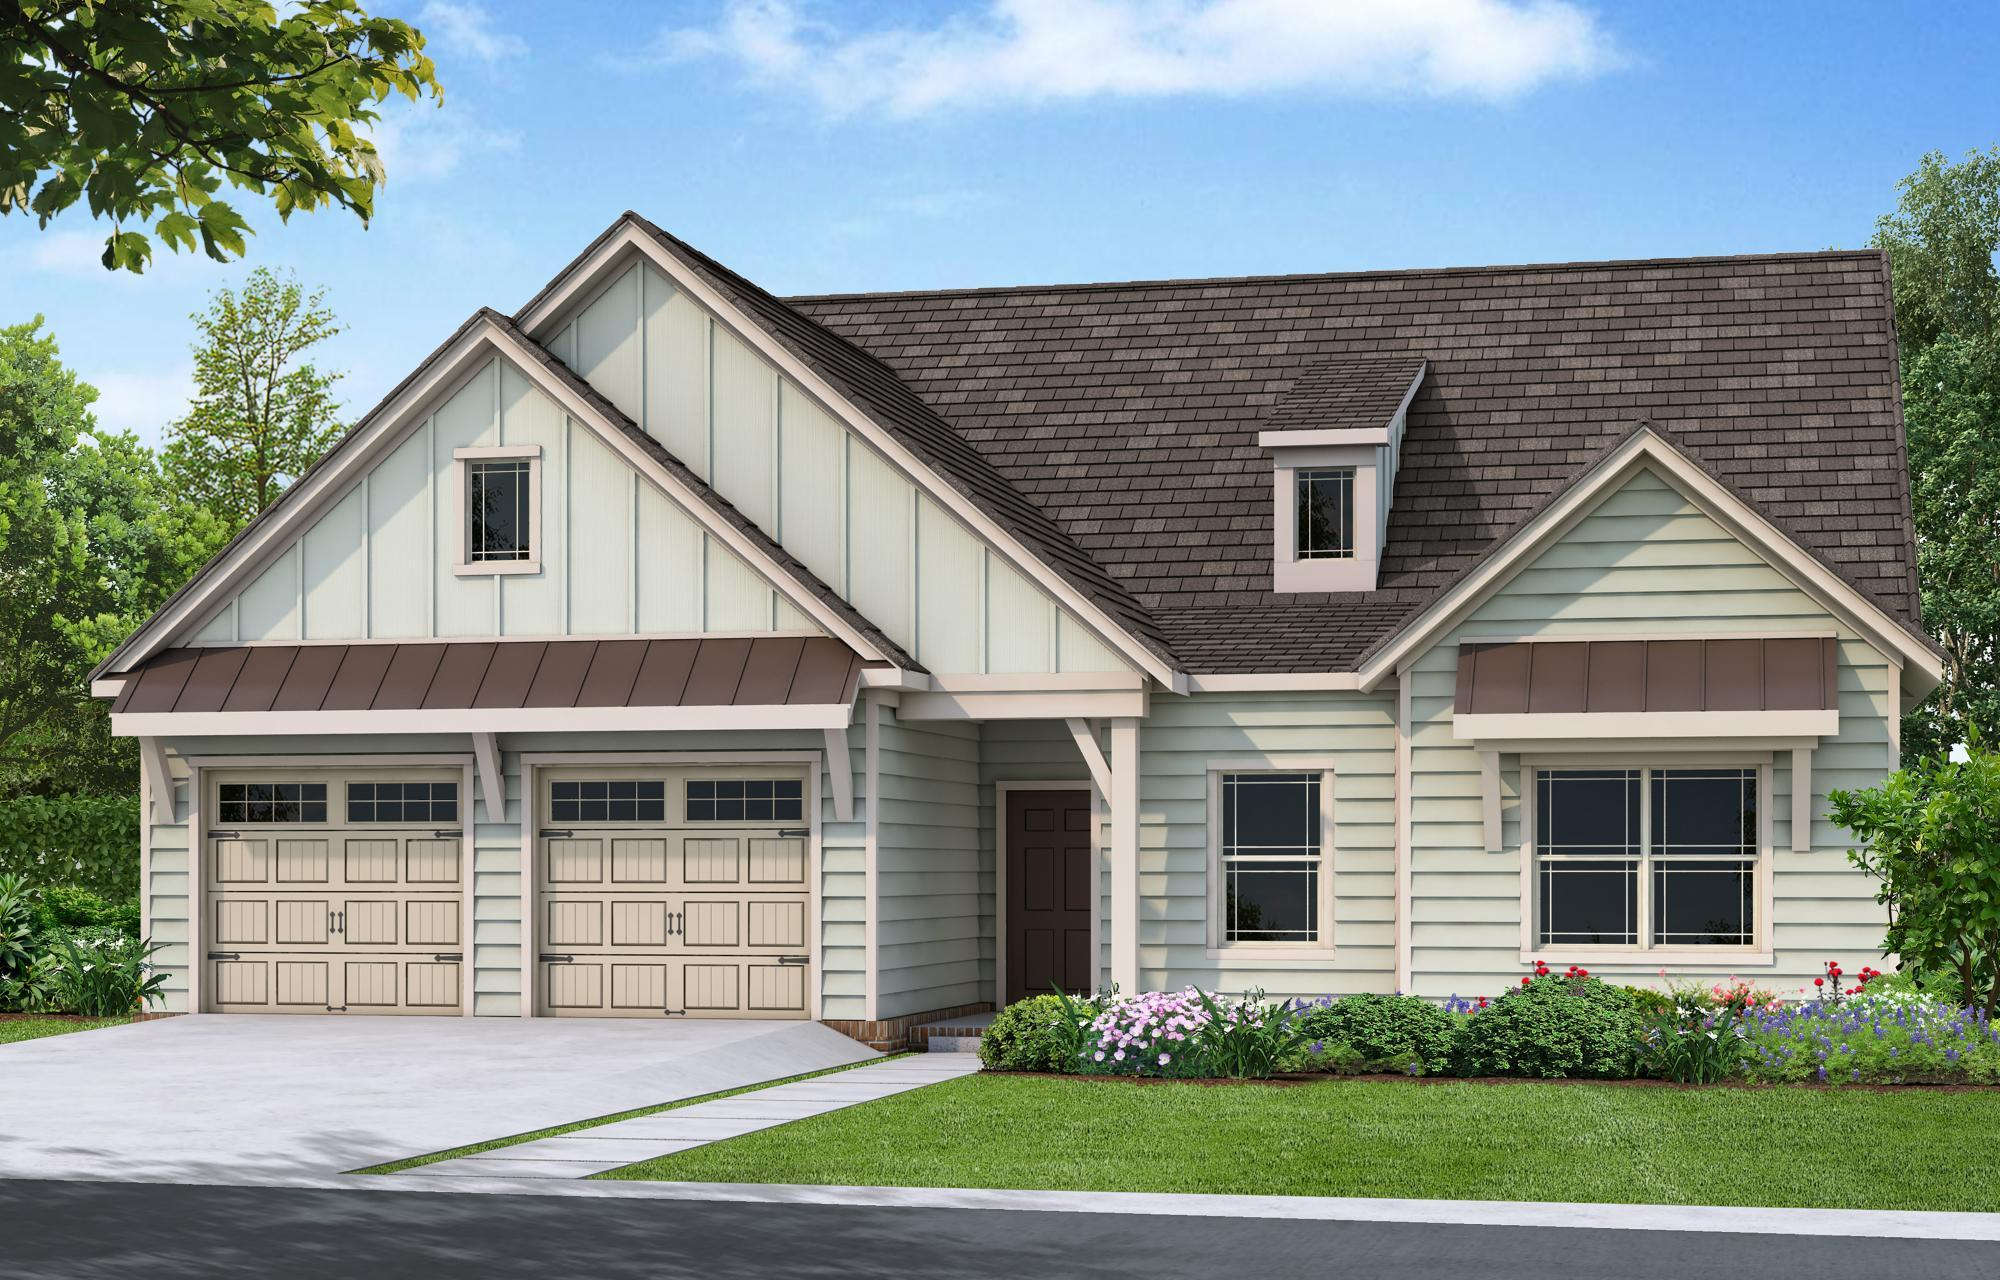 Exterior featured in The Hanover By Goodall Homes in Chattanooga, TN